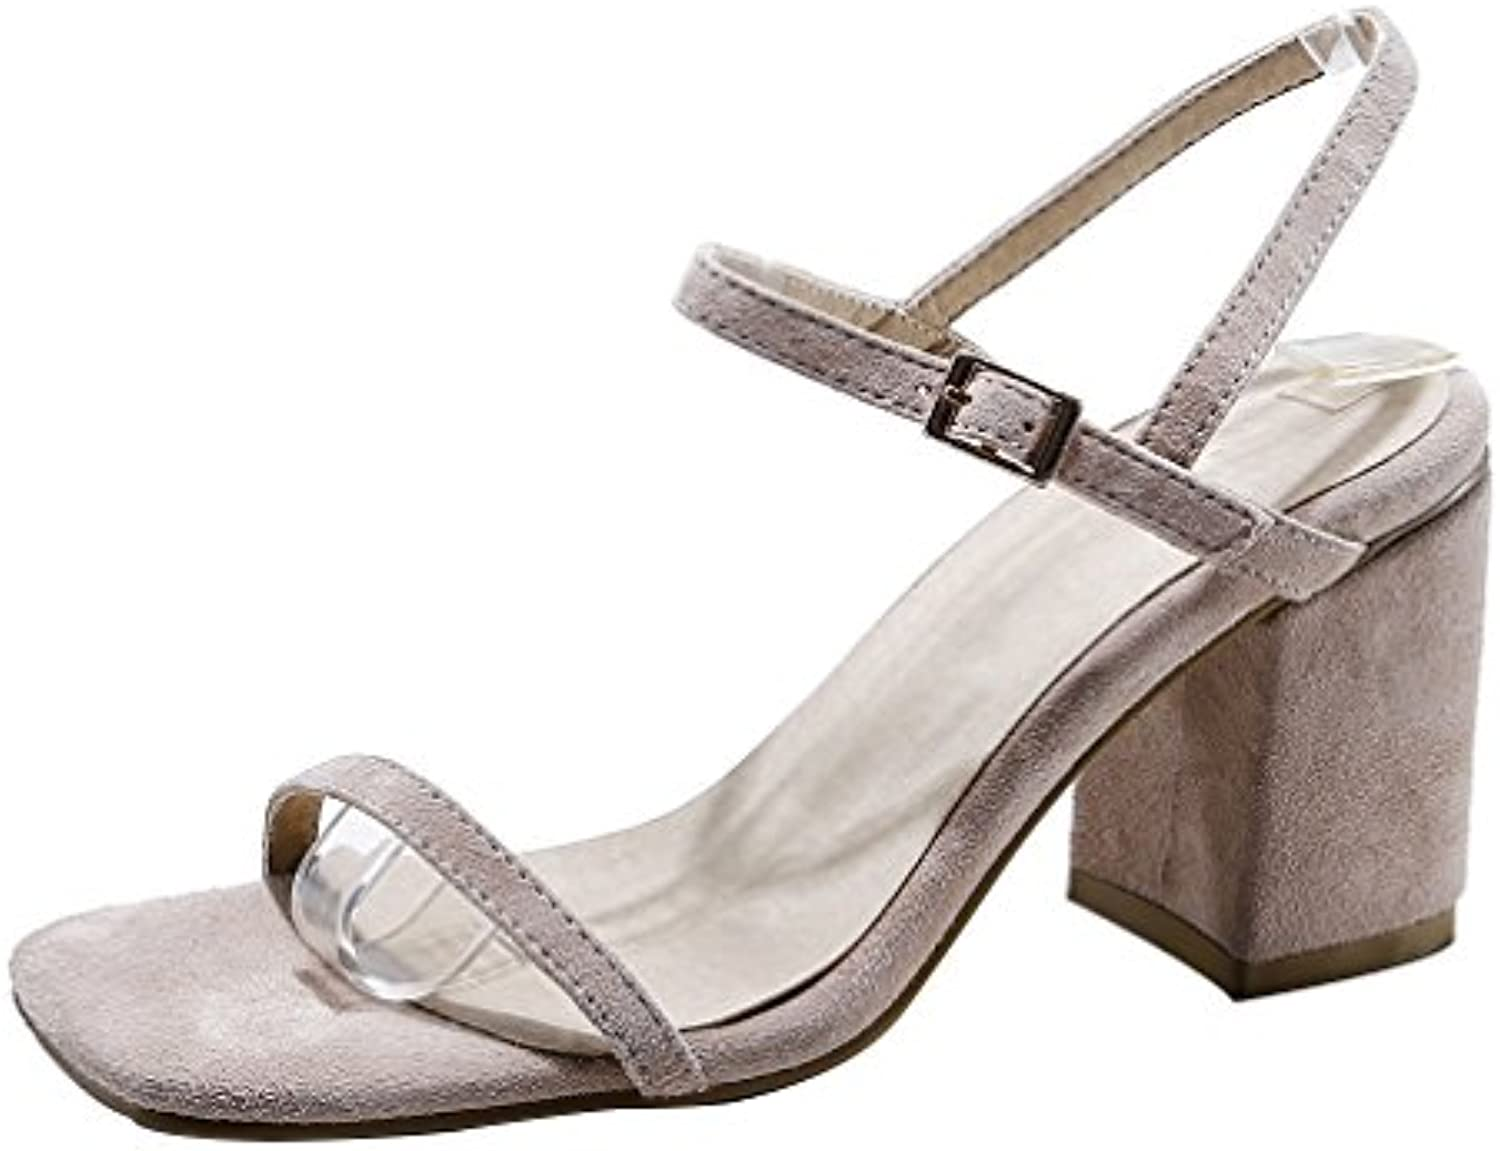 dca27e041ddd Calaier Calaier Calaier Women s Cabicycle Fashion Sandals B071R7QZQ4 Parent  66875d